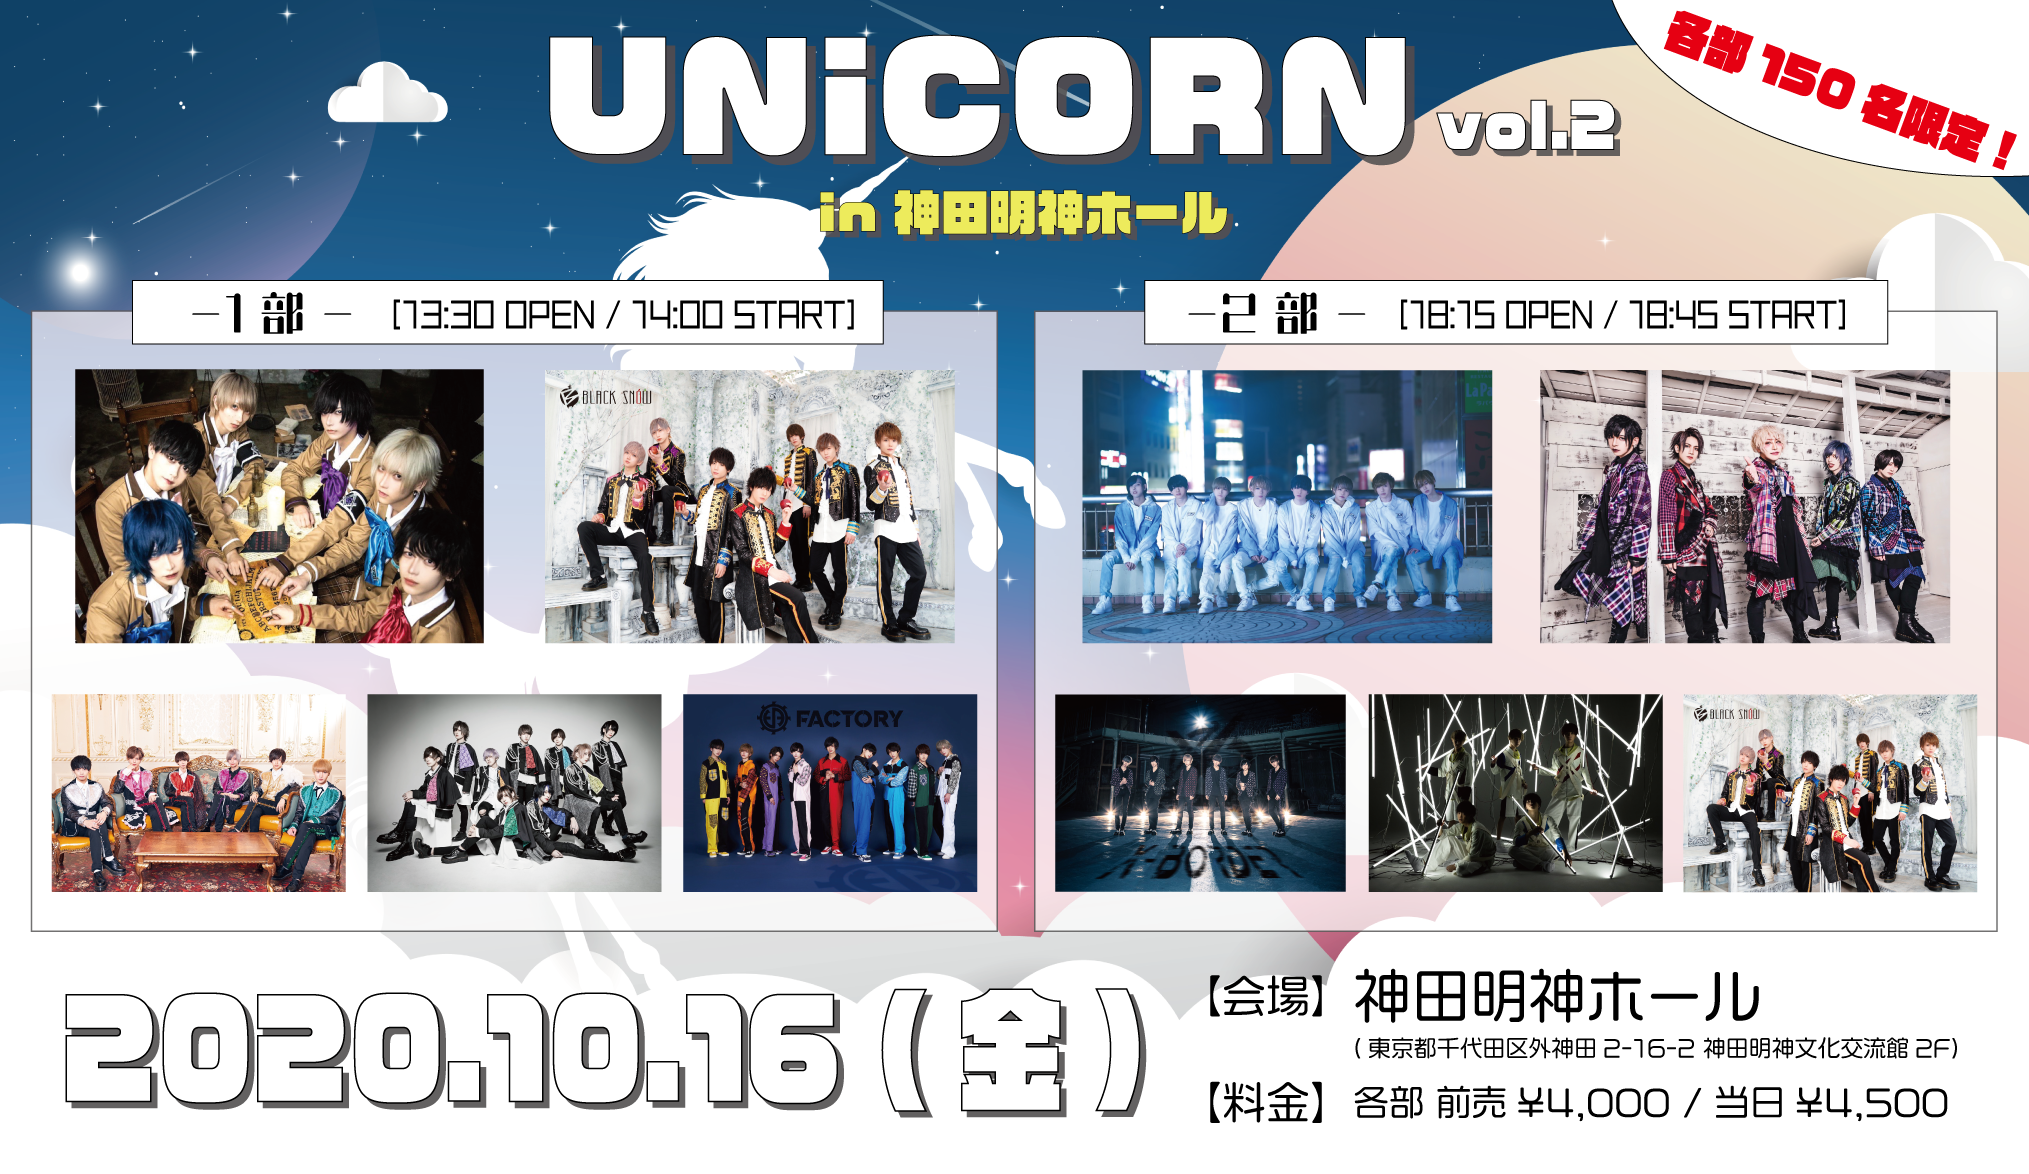 UNiCORN vol.2【2部】